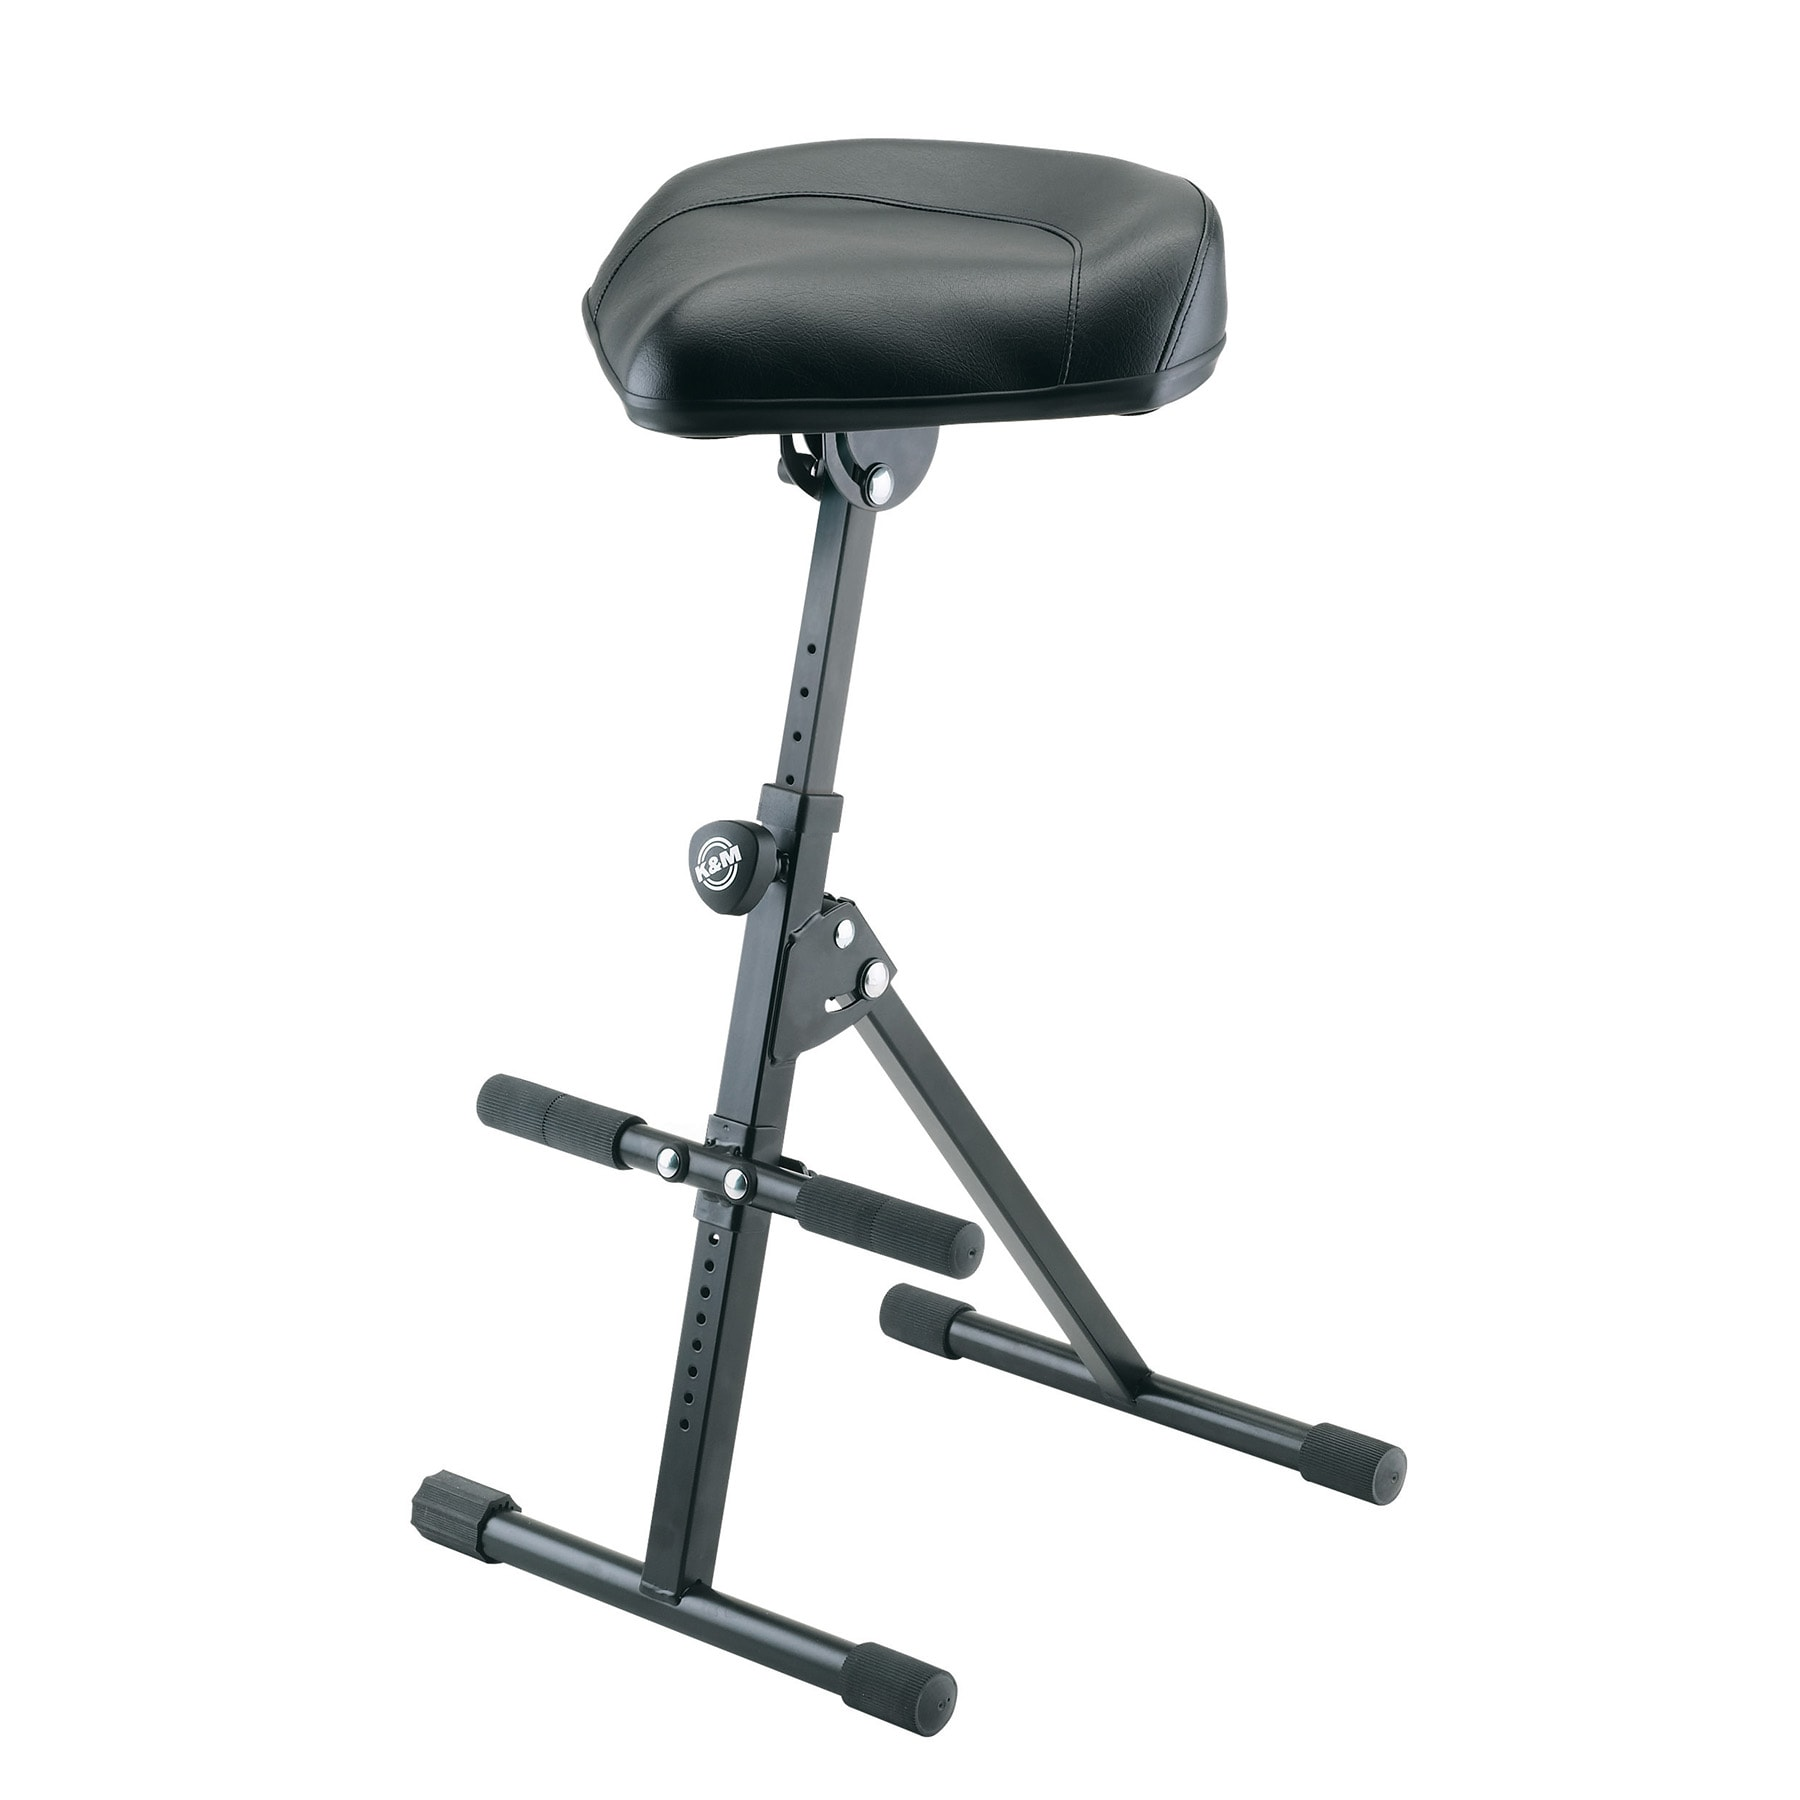 KM14047 - Pneumatic stool